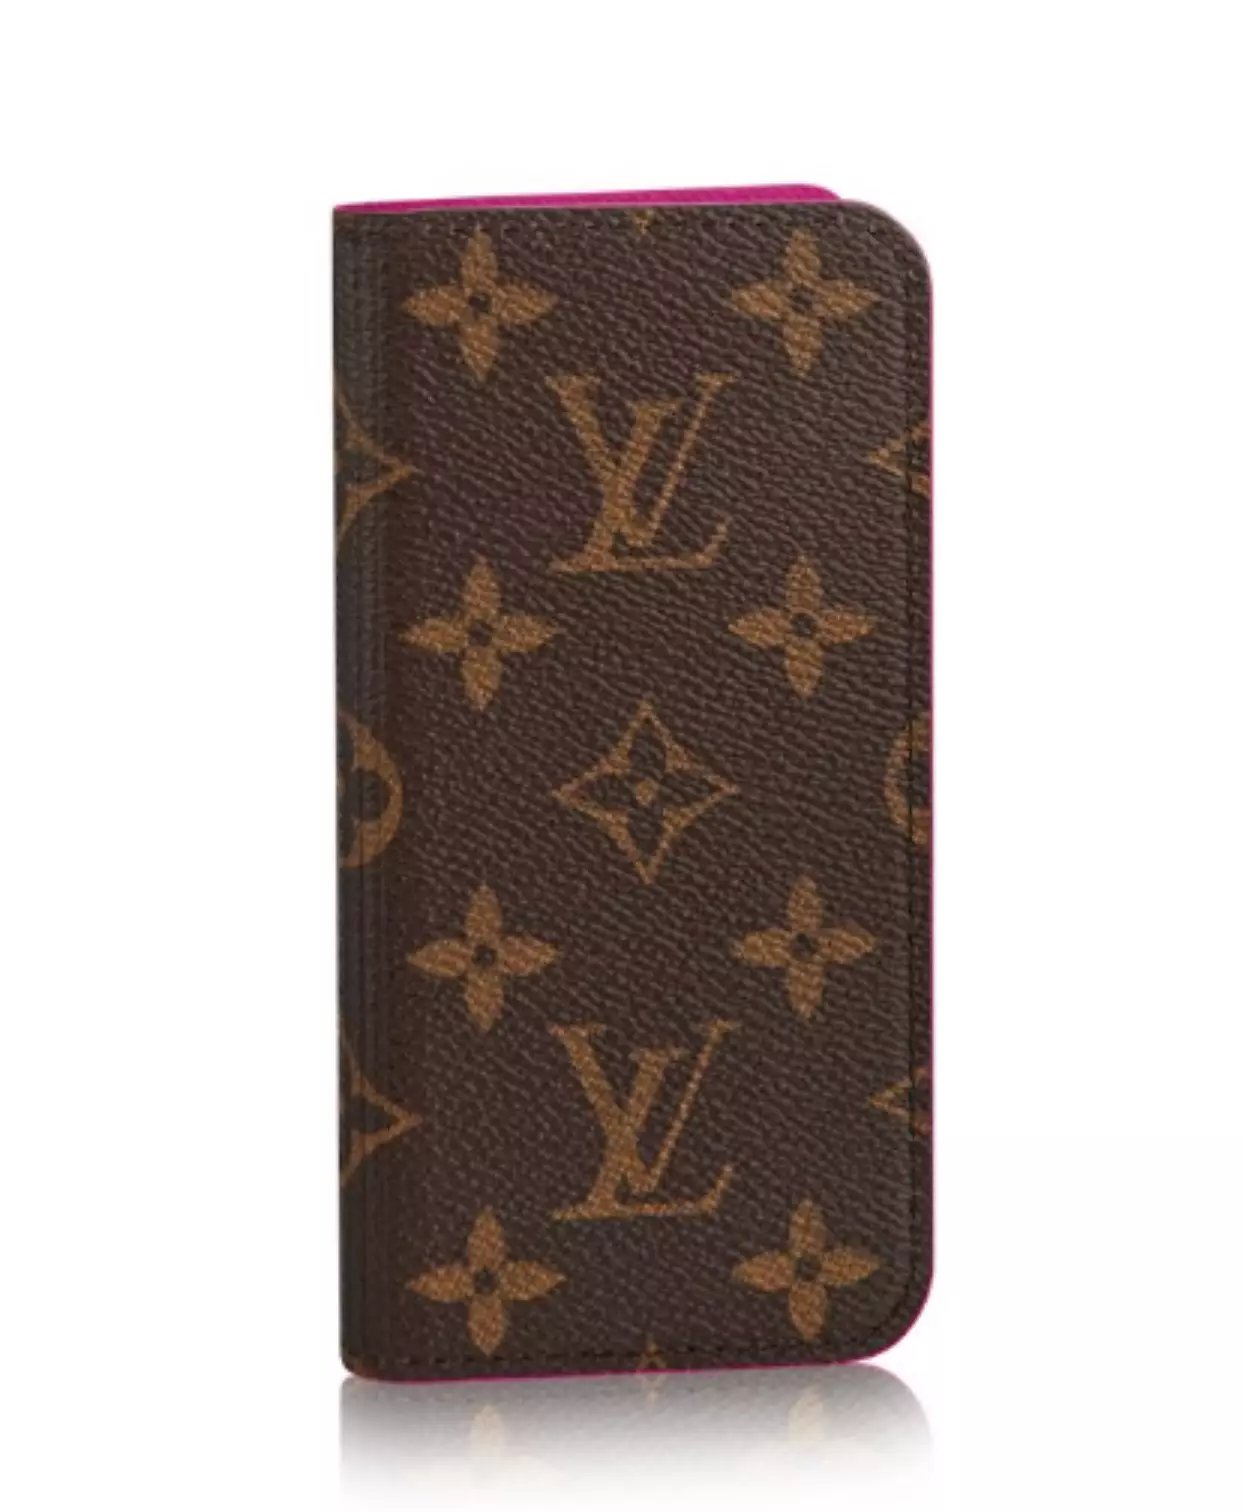 iphone case mit foto edle iphone hüllen Louis Vuitton iphone7 Plus hülle 7lber hüllen gestalten iphone 7 Plus a7 leder apple handyhülle iphone 3 ipohne 6 iphone cover gestalten flip ca7 mit eigenem foto